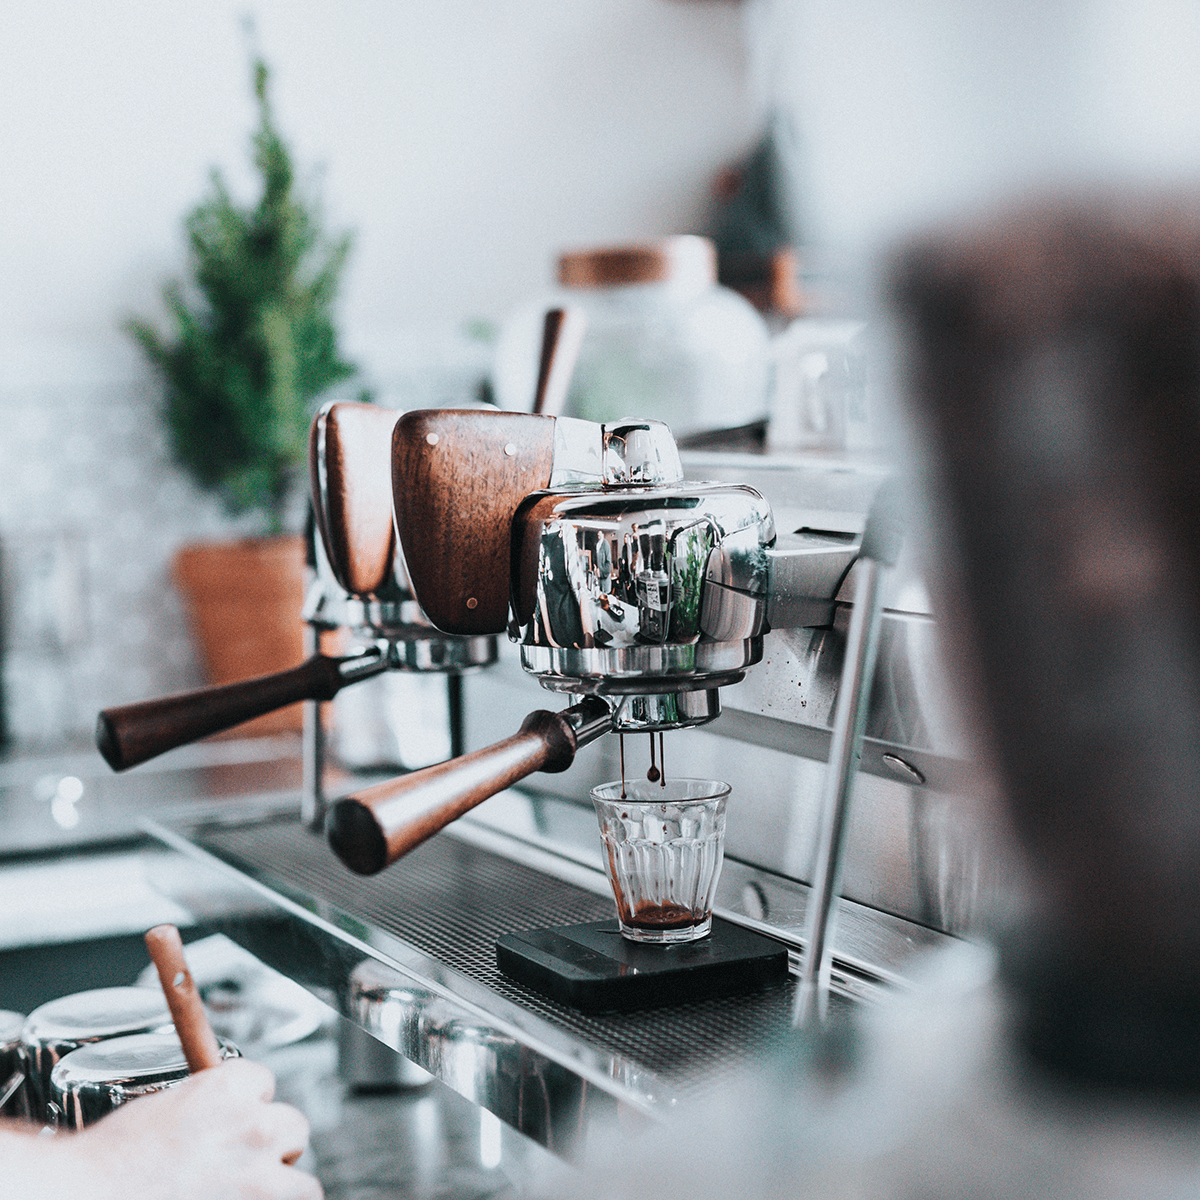 Connected coffee machines as an example of Bibe Coffee's IoT use case